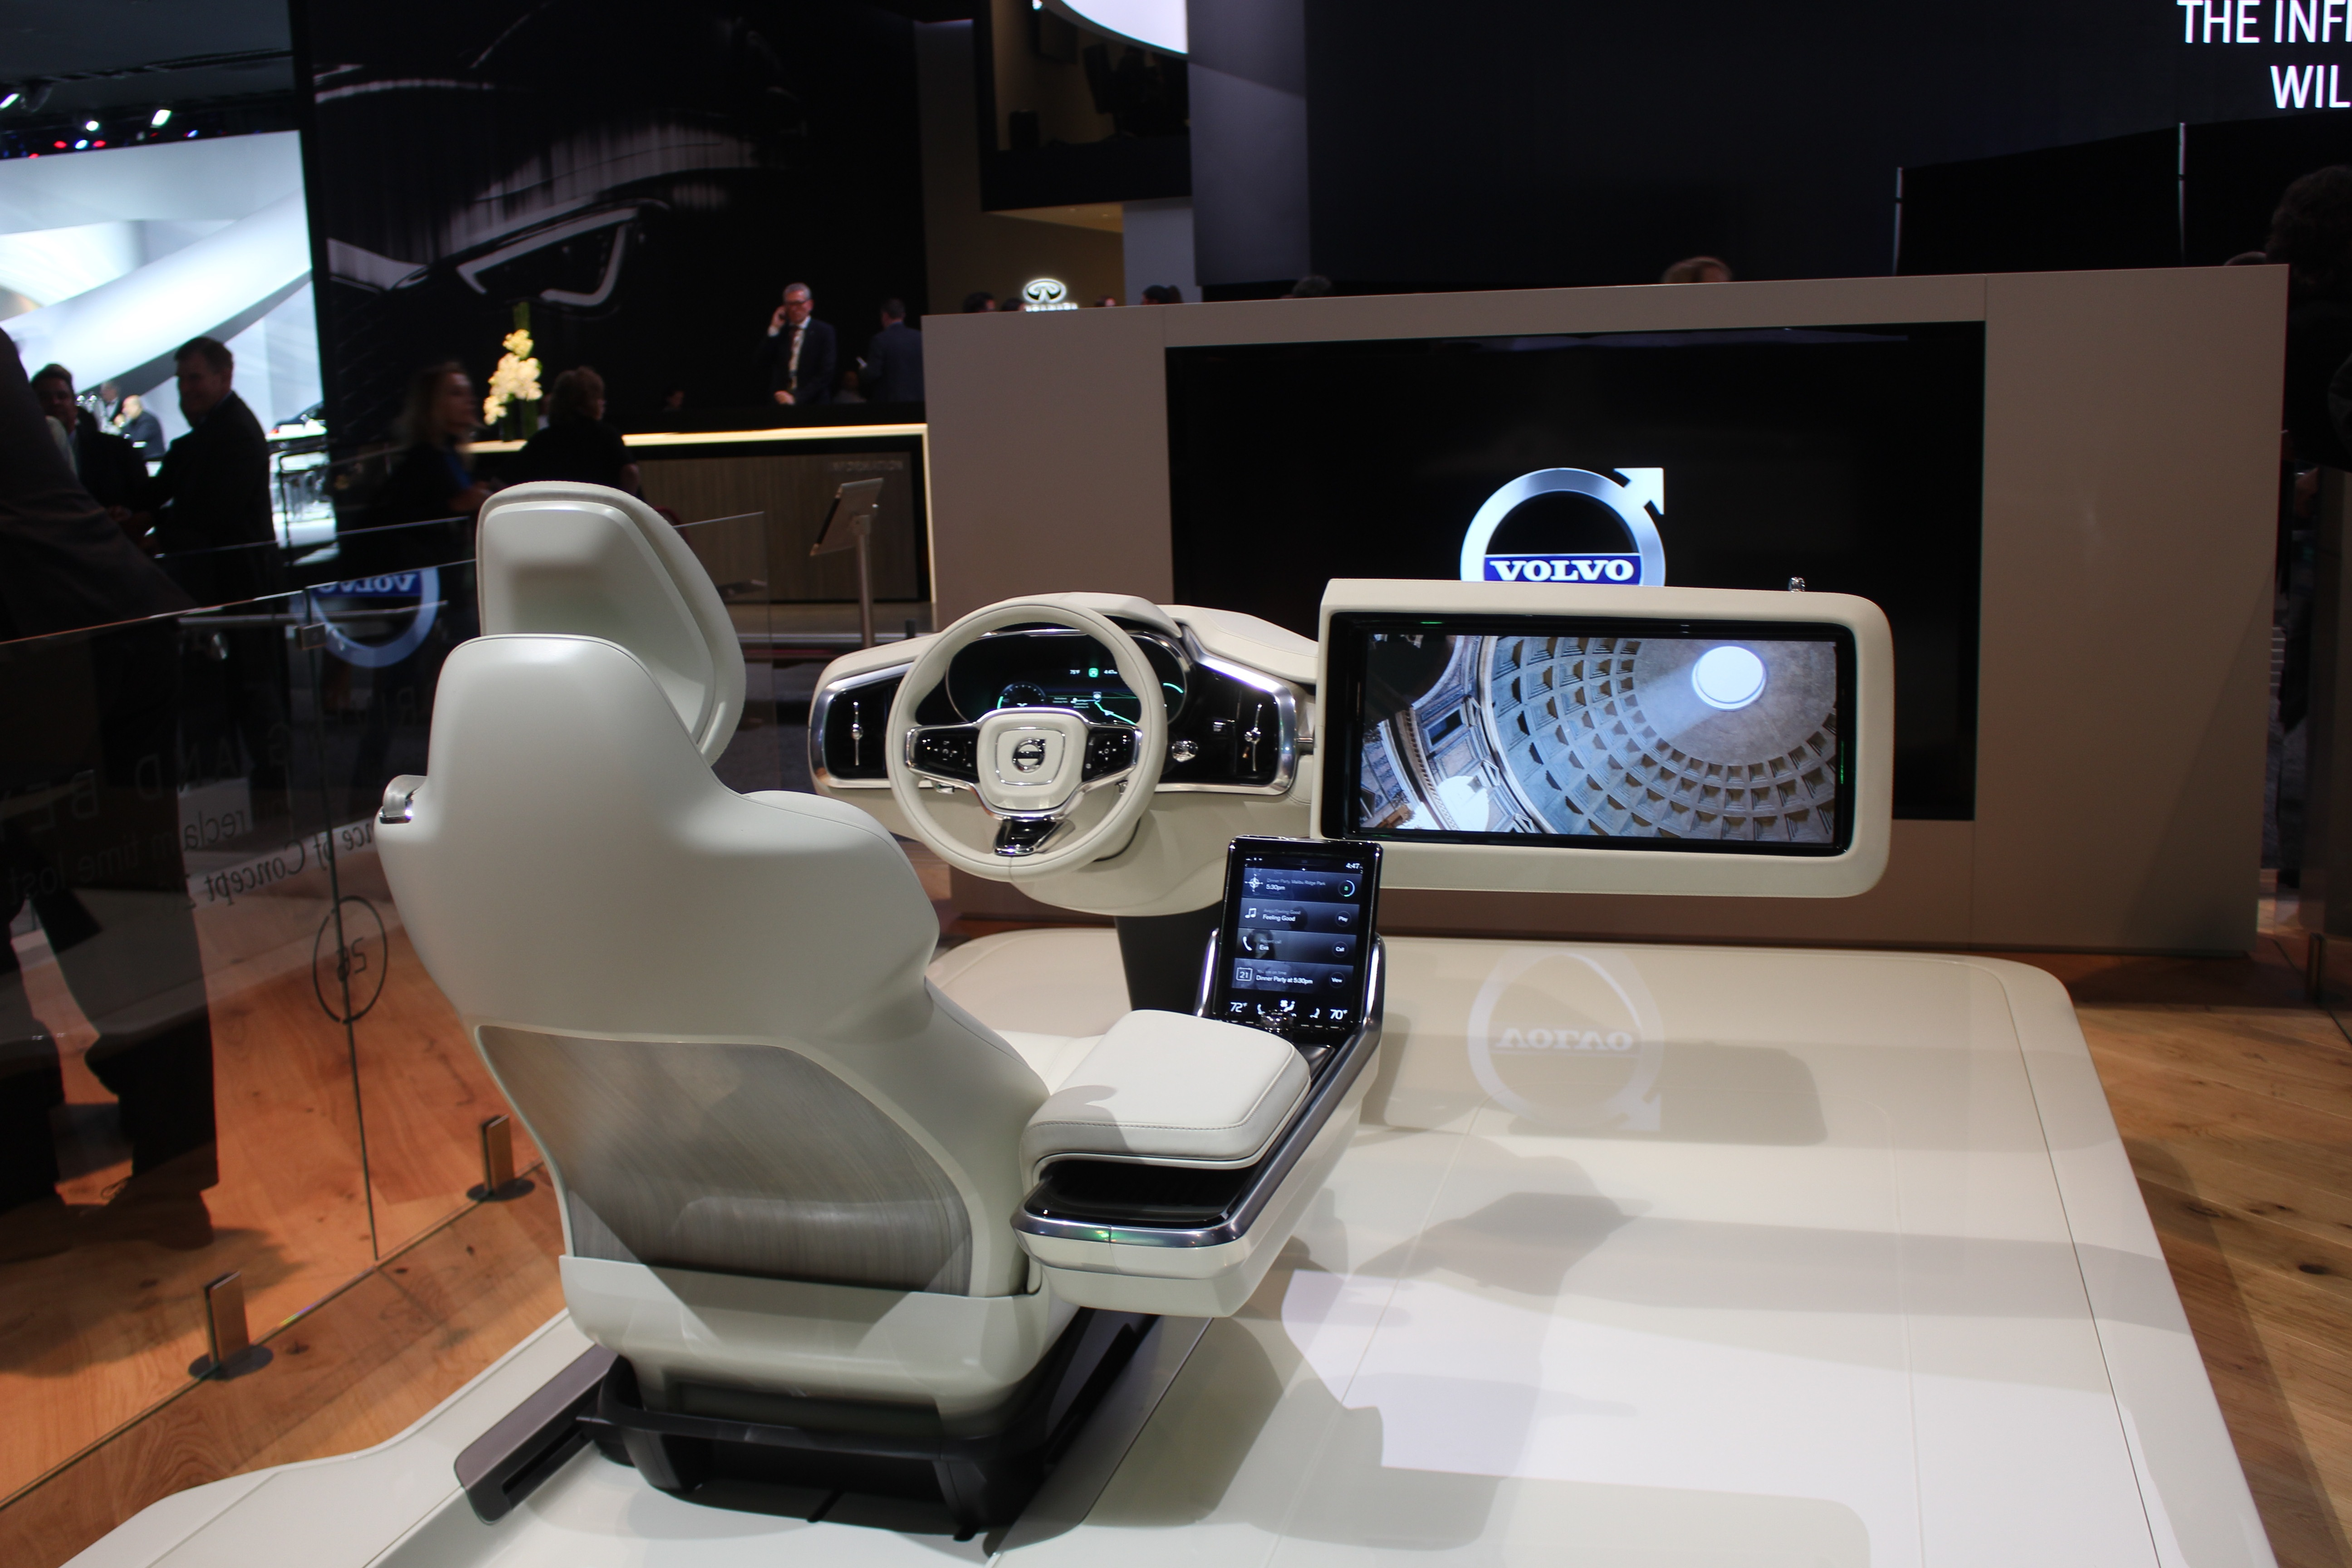 Scene from the North American International Auto Show in Detroit Michigan, January 11 2016. (Photo by Maureen Revait)